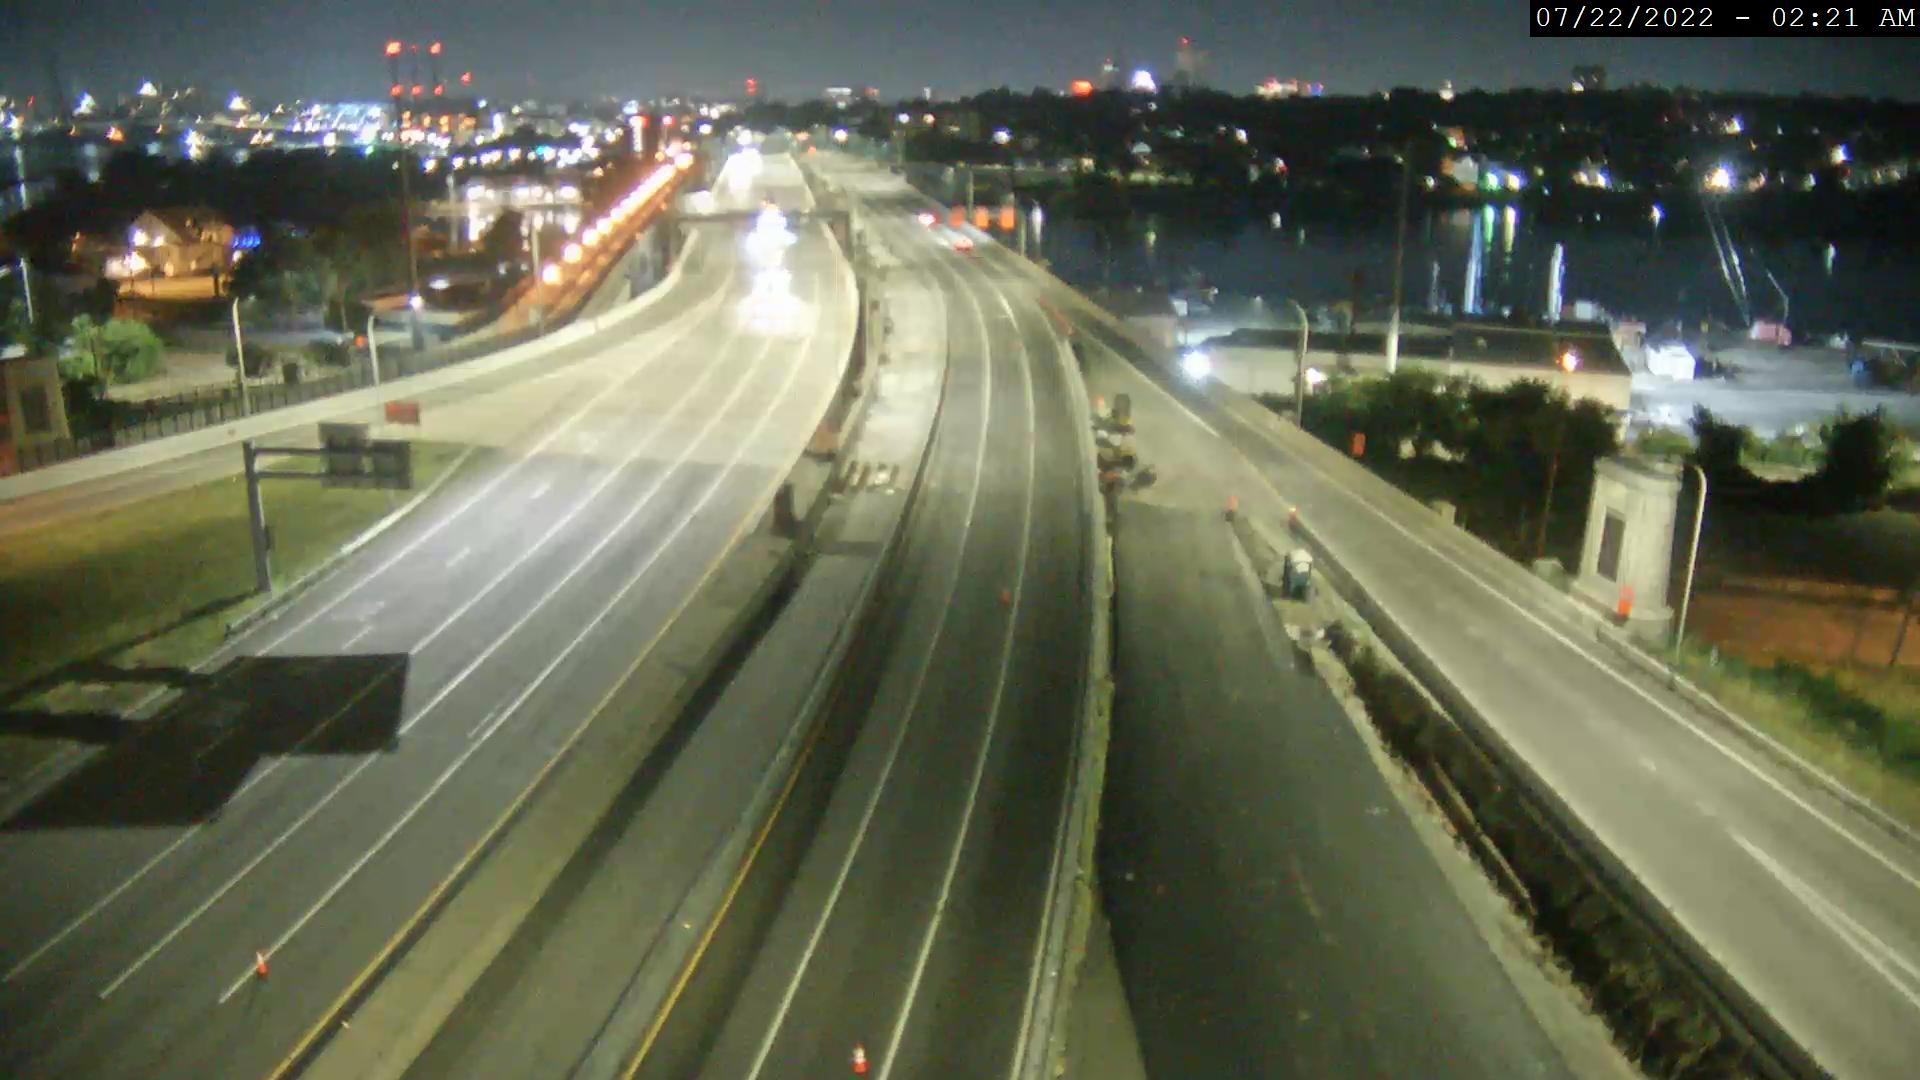 Camera at I-195 Washington Bridge